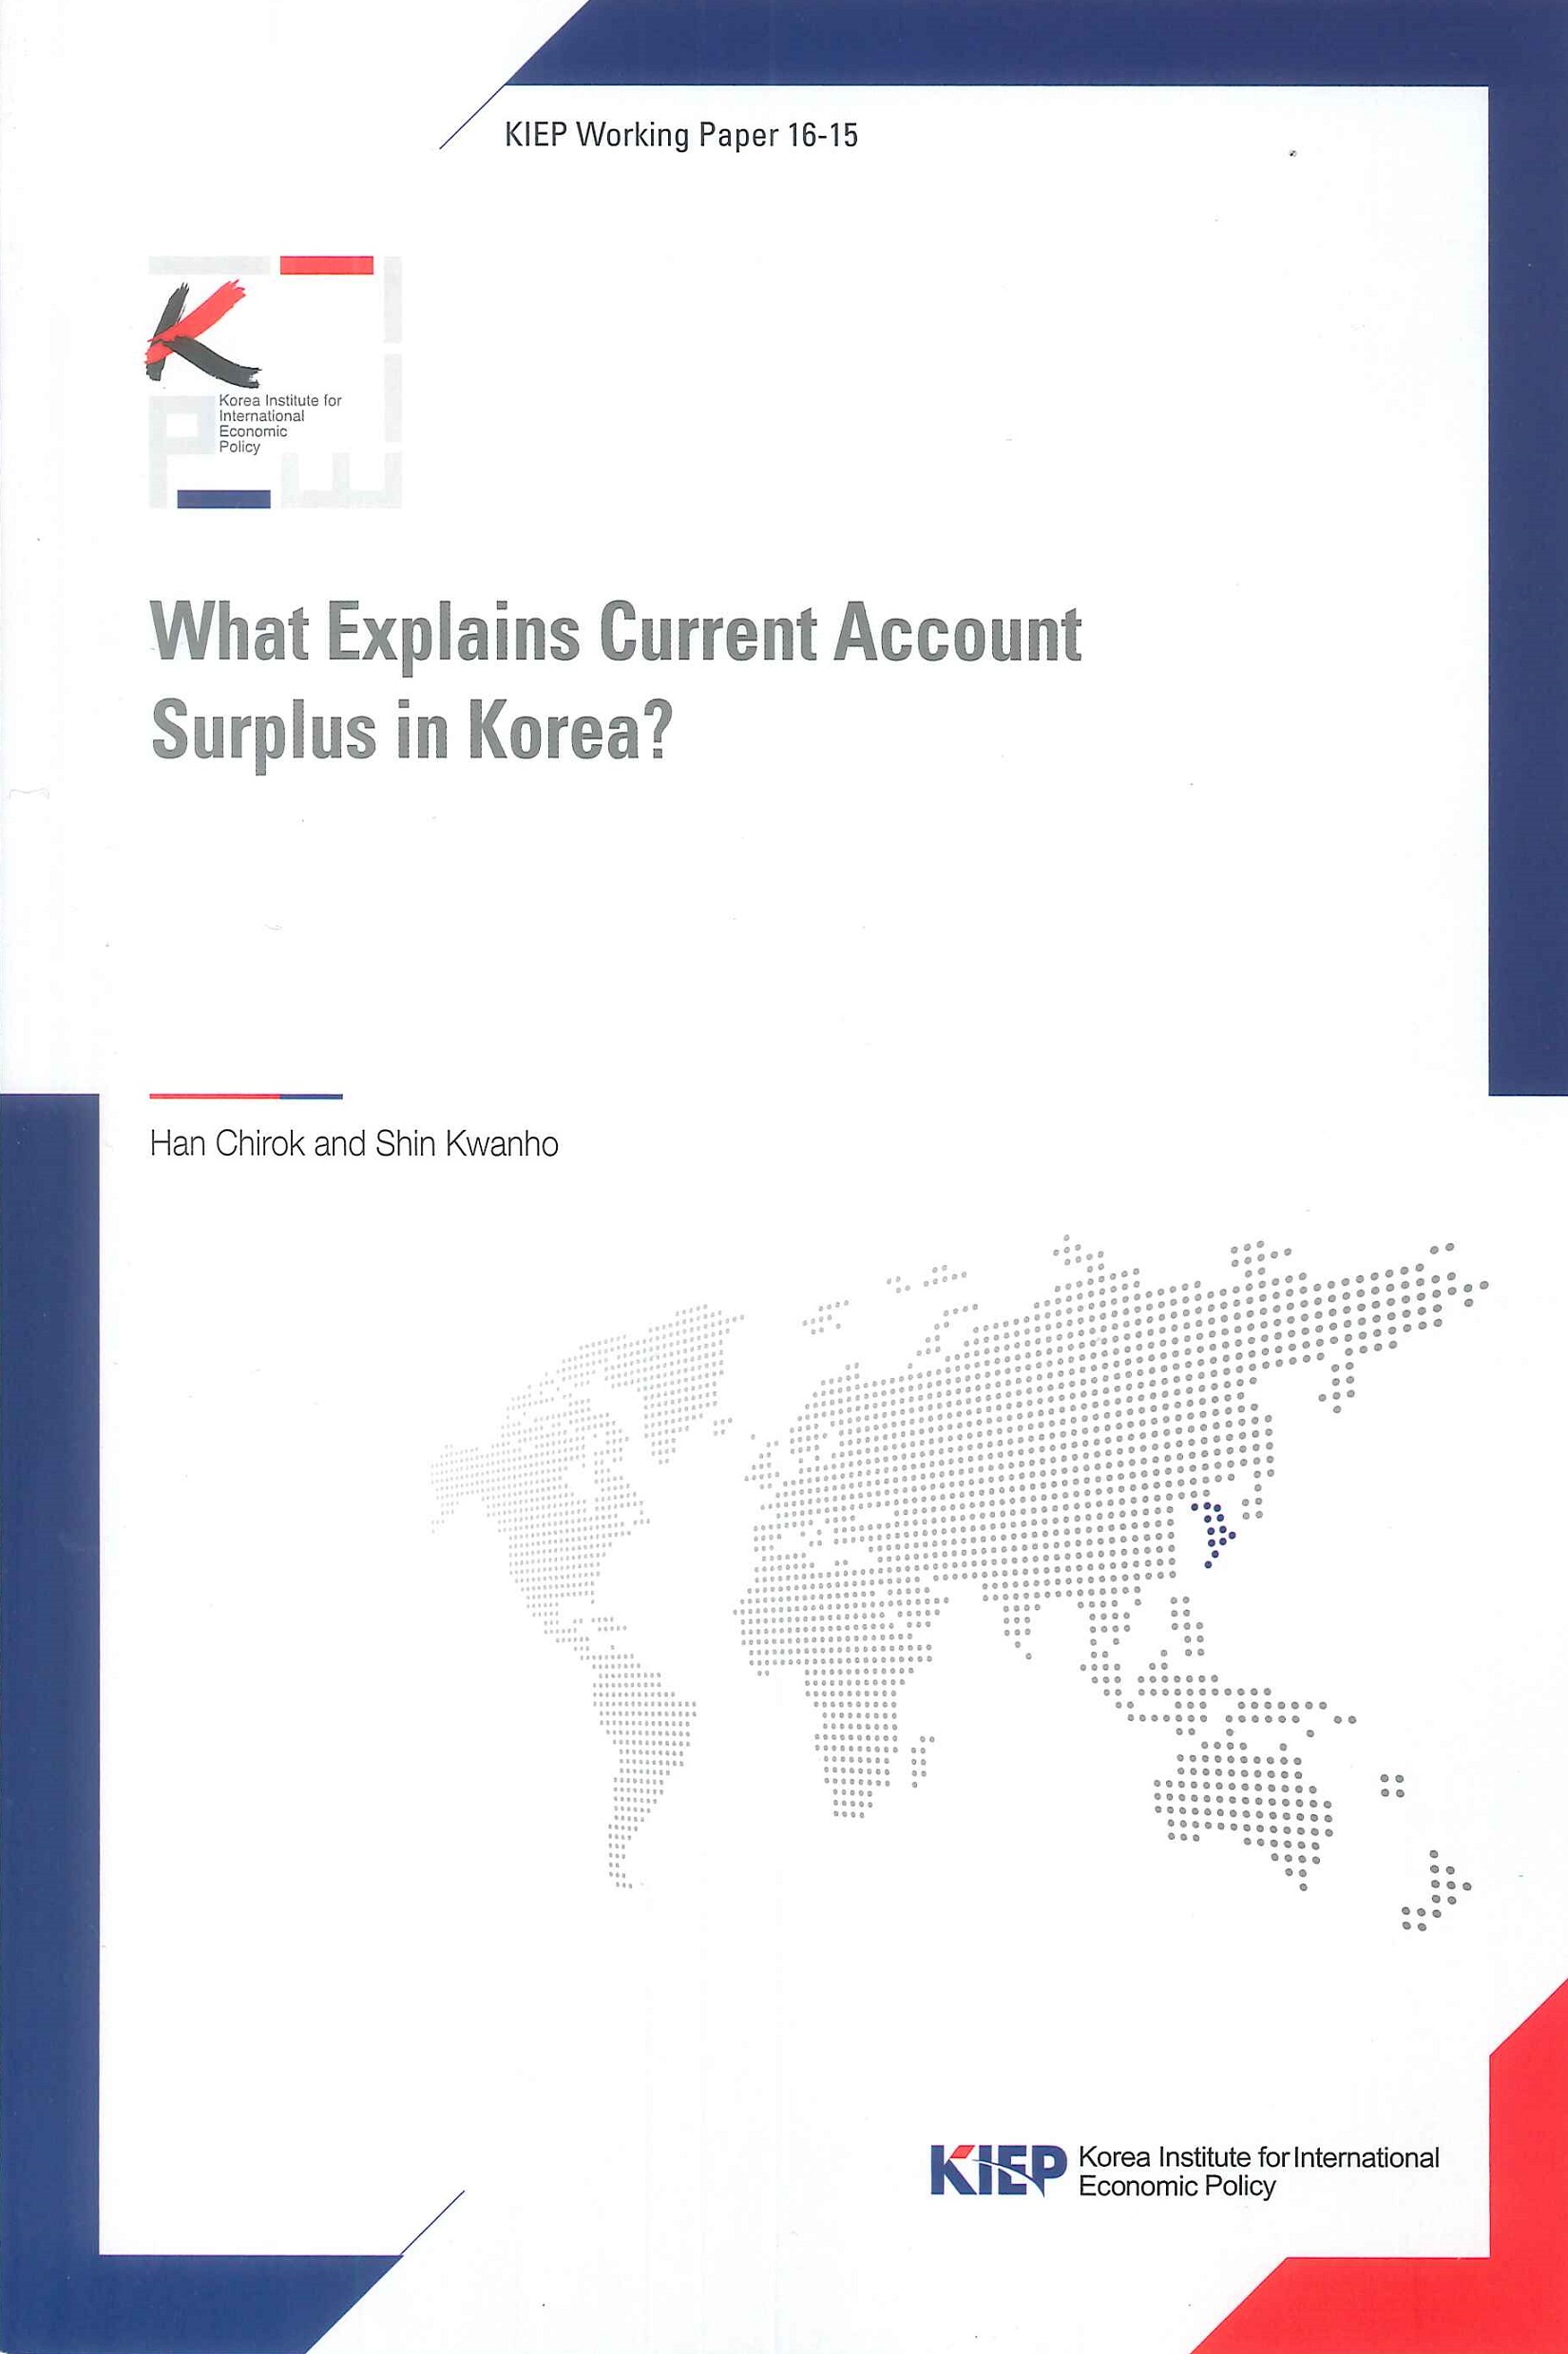 What explains current account surplus in Korea?